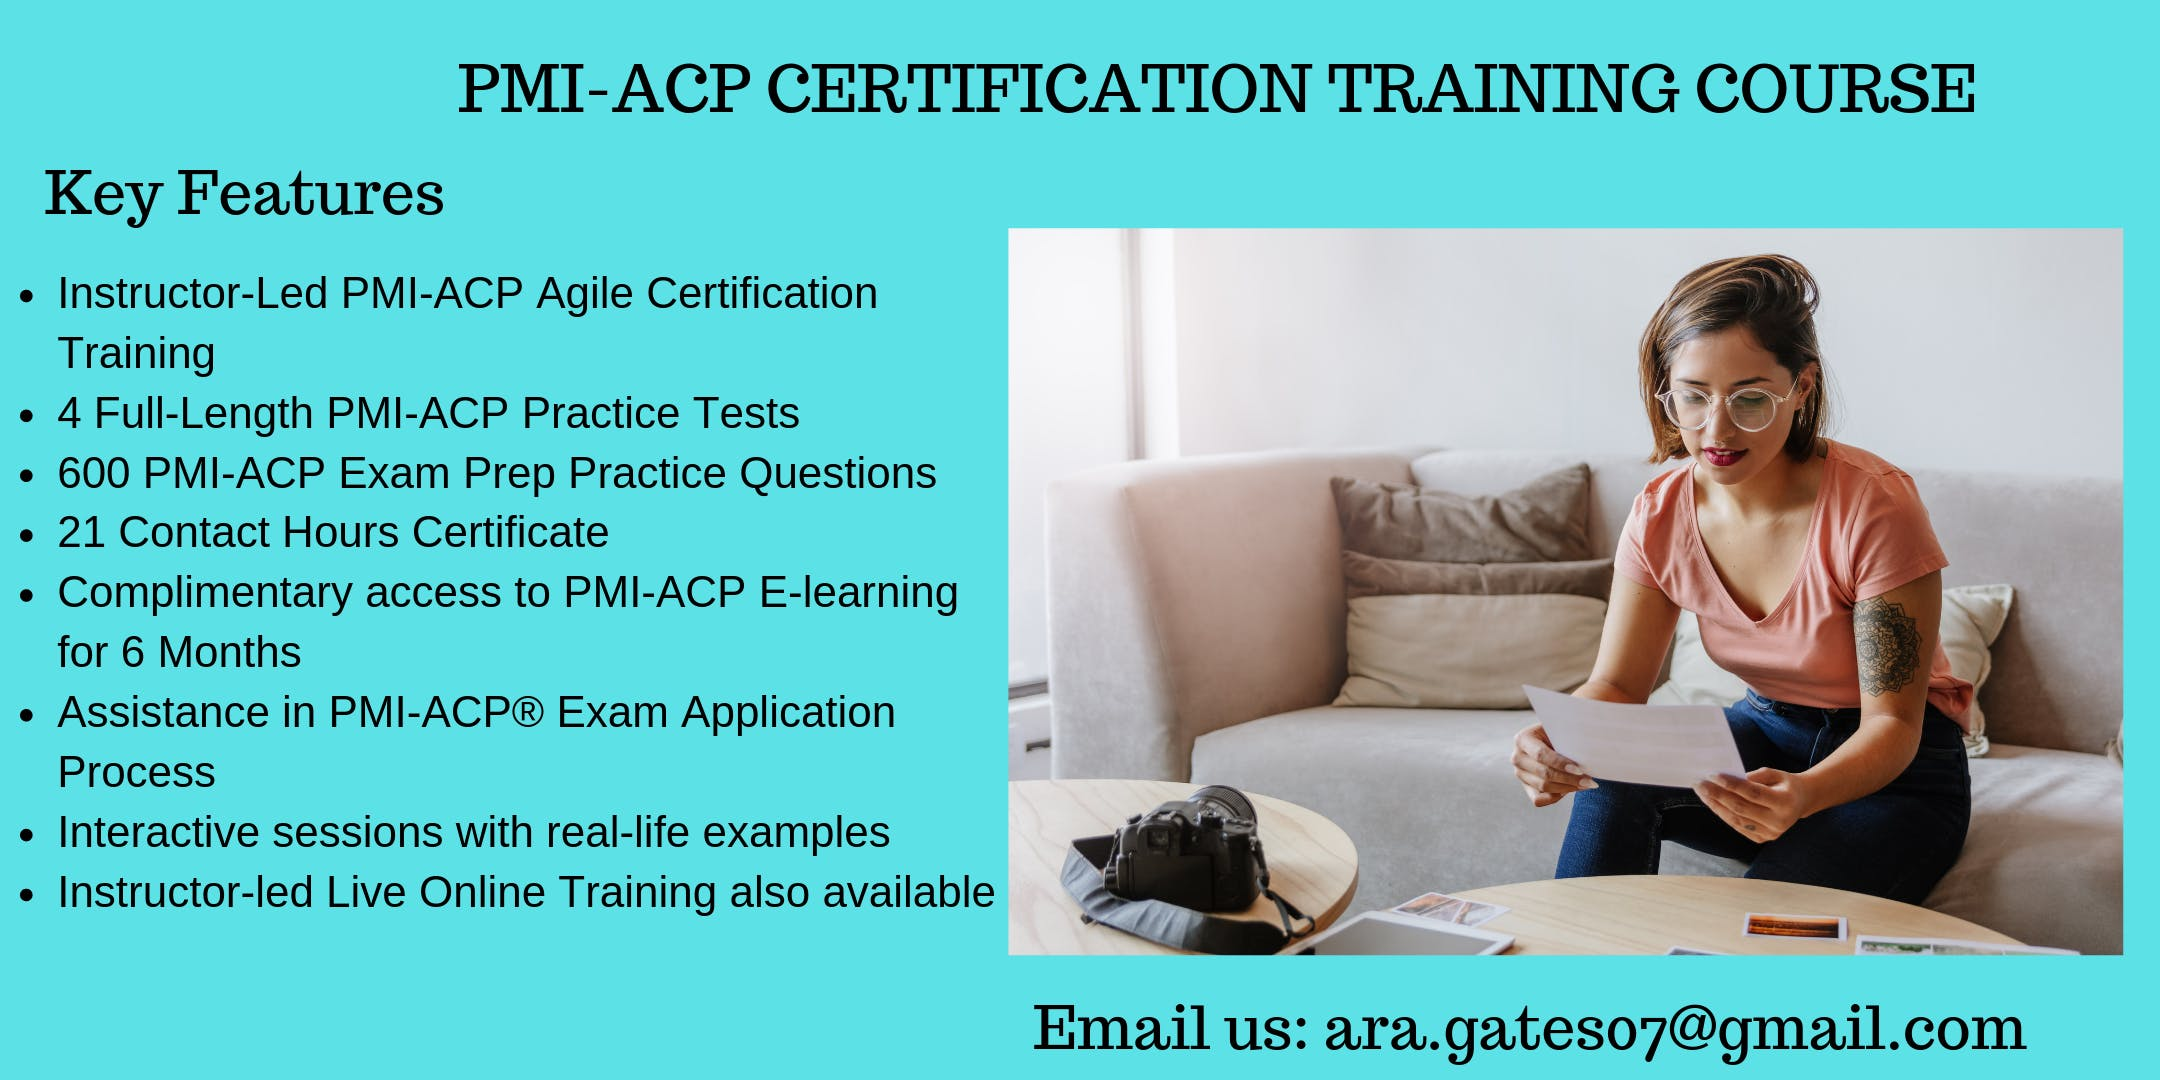 PMI-ACP Certification Course in San Diego, CA